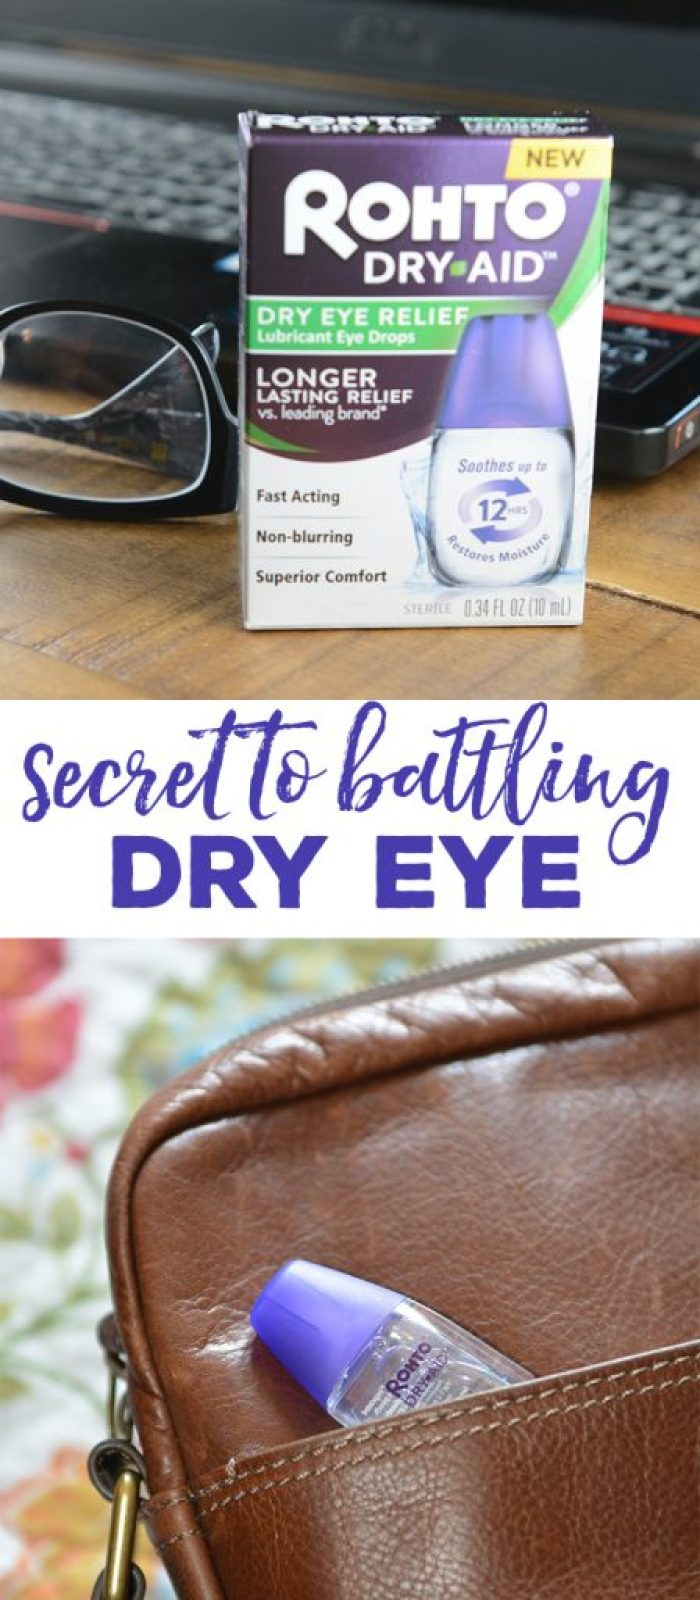 Do you spend hours online or enjoy hobbies that can be hard on your eyes like reading or art? We just may have found the secret to fighting dry eye while going about your day and doing what you love.